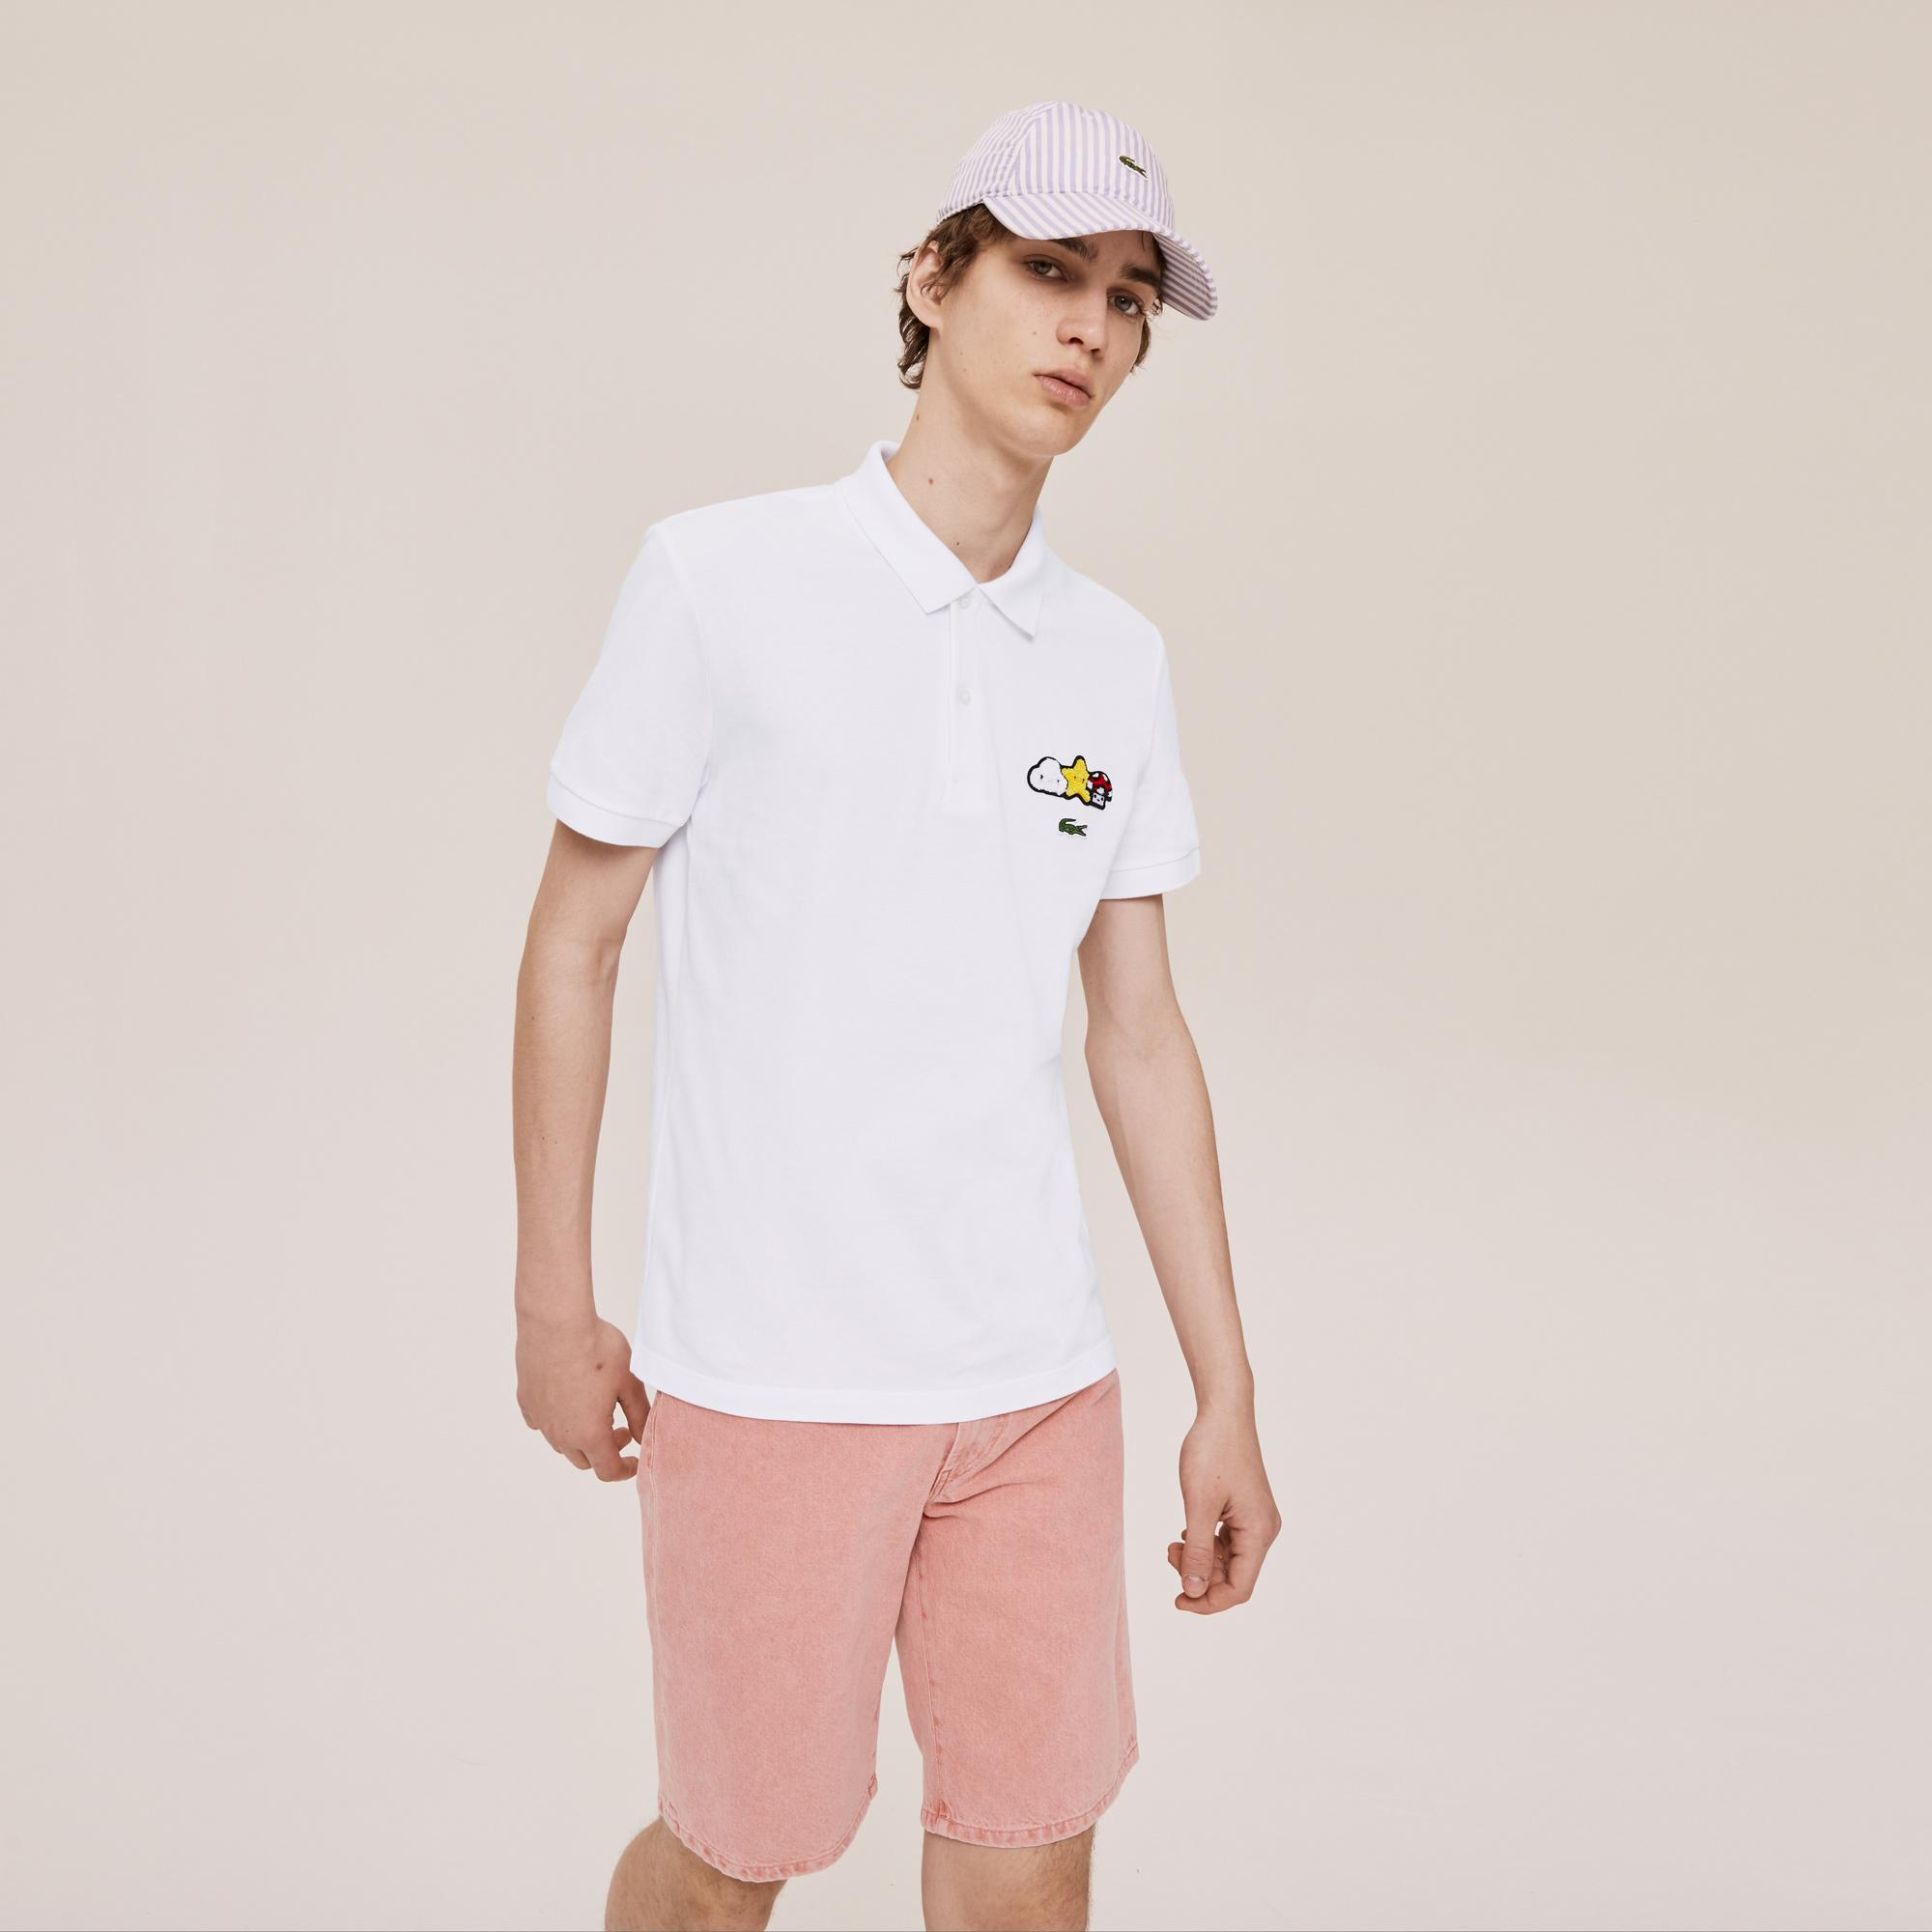 Lacoste Unisex x FriendsWithYou Design Classic Fit Polo Shirt